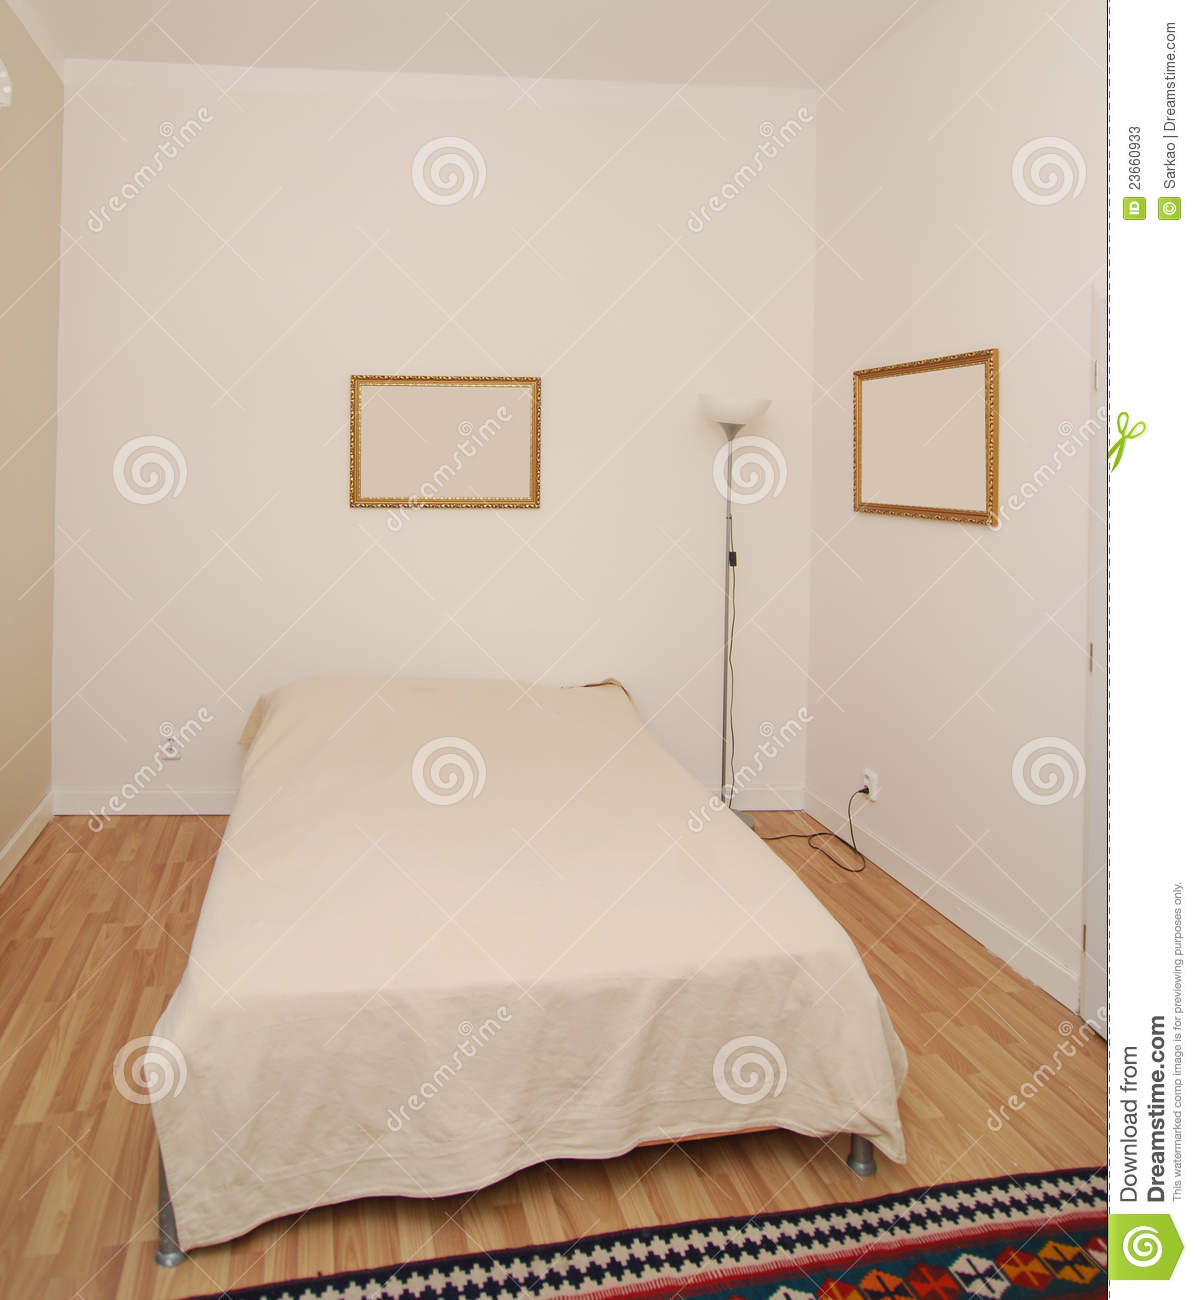 simple bedroom stock image image of carpet furniture